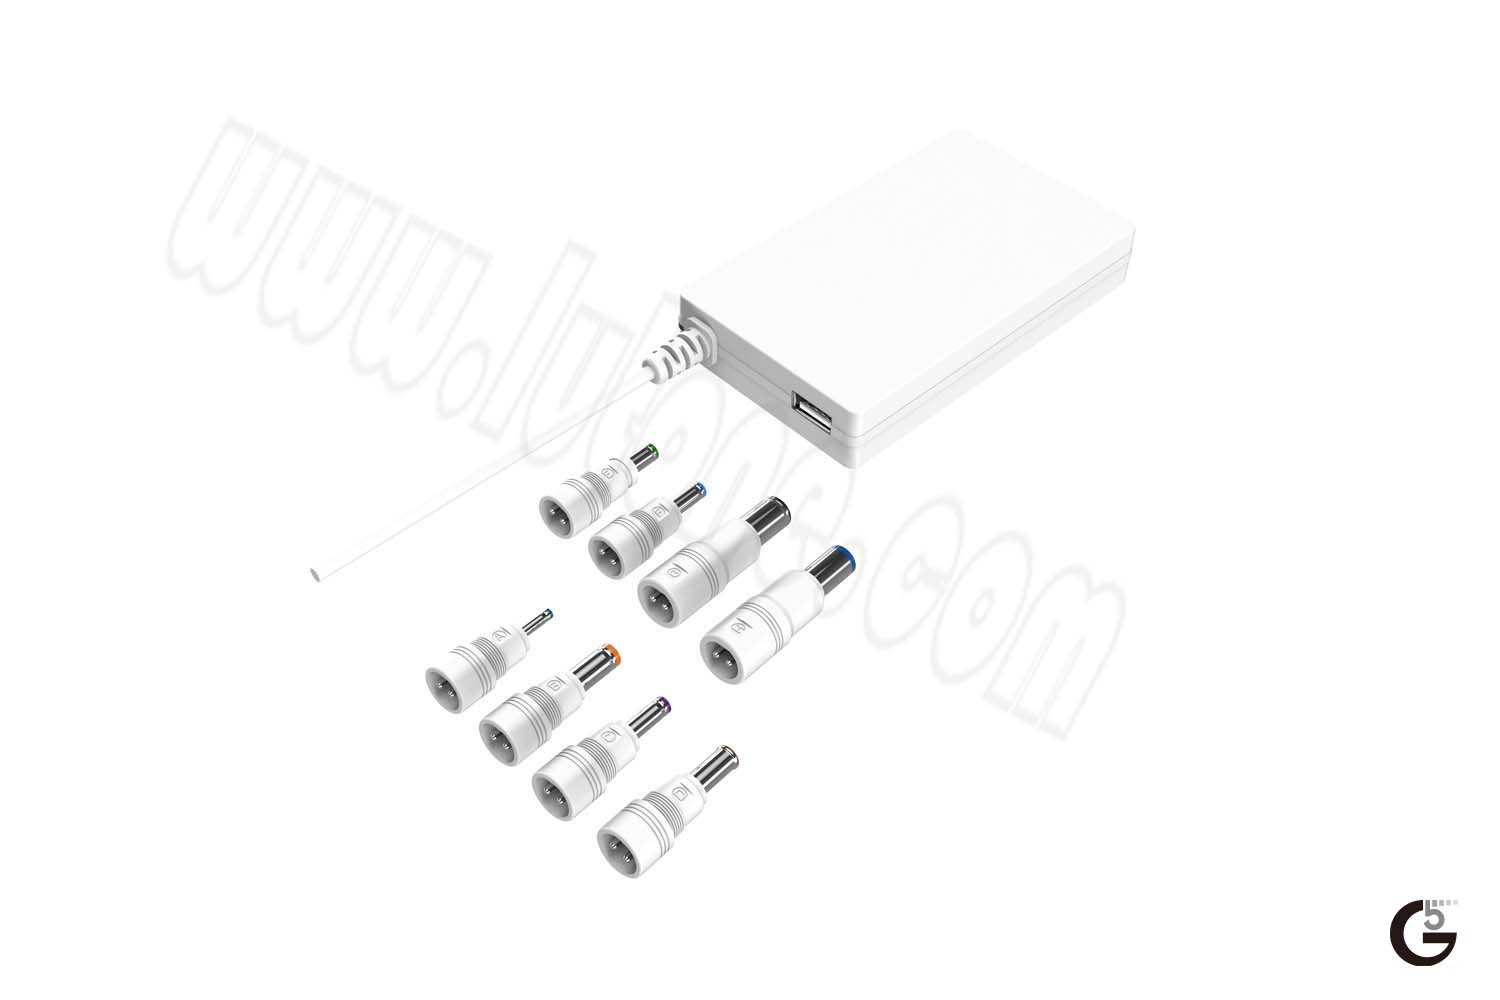 compact universal notebook charger